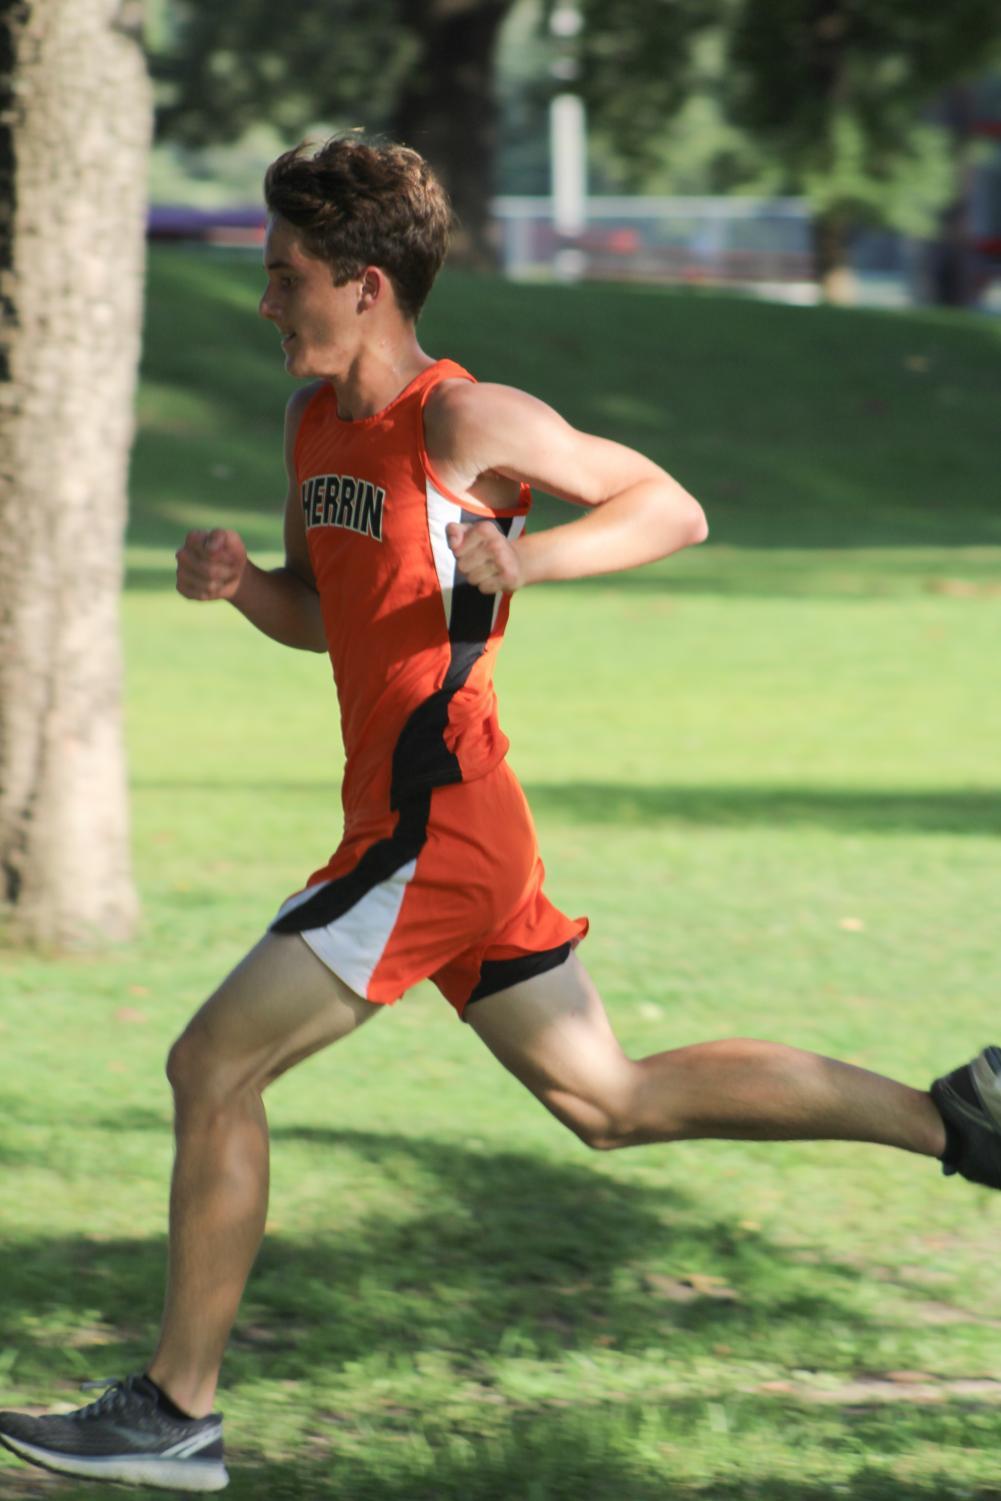 Cameron Christ (9) speeds up while running towards the finish line on August 27th at West Frankfort.